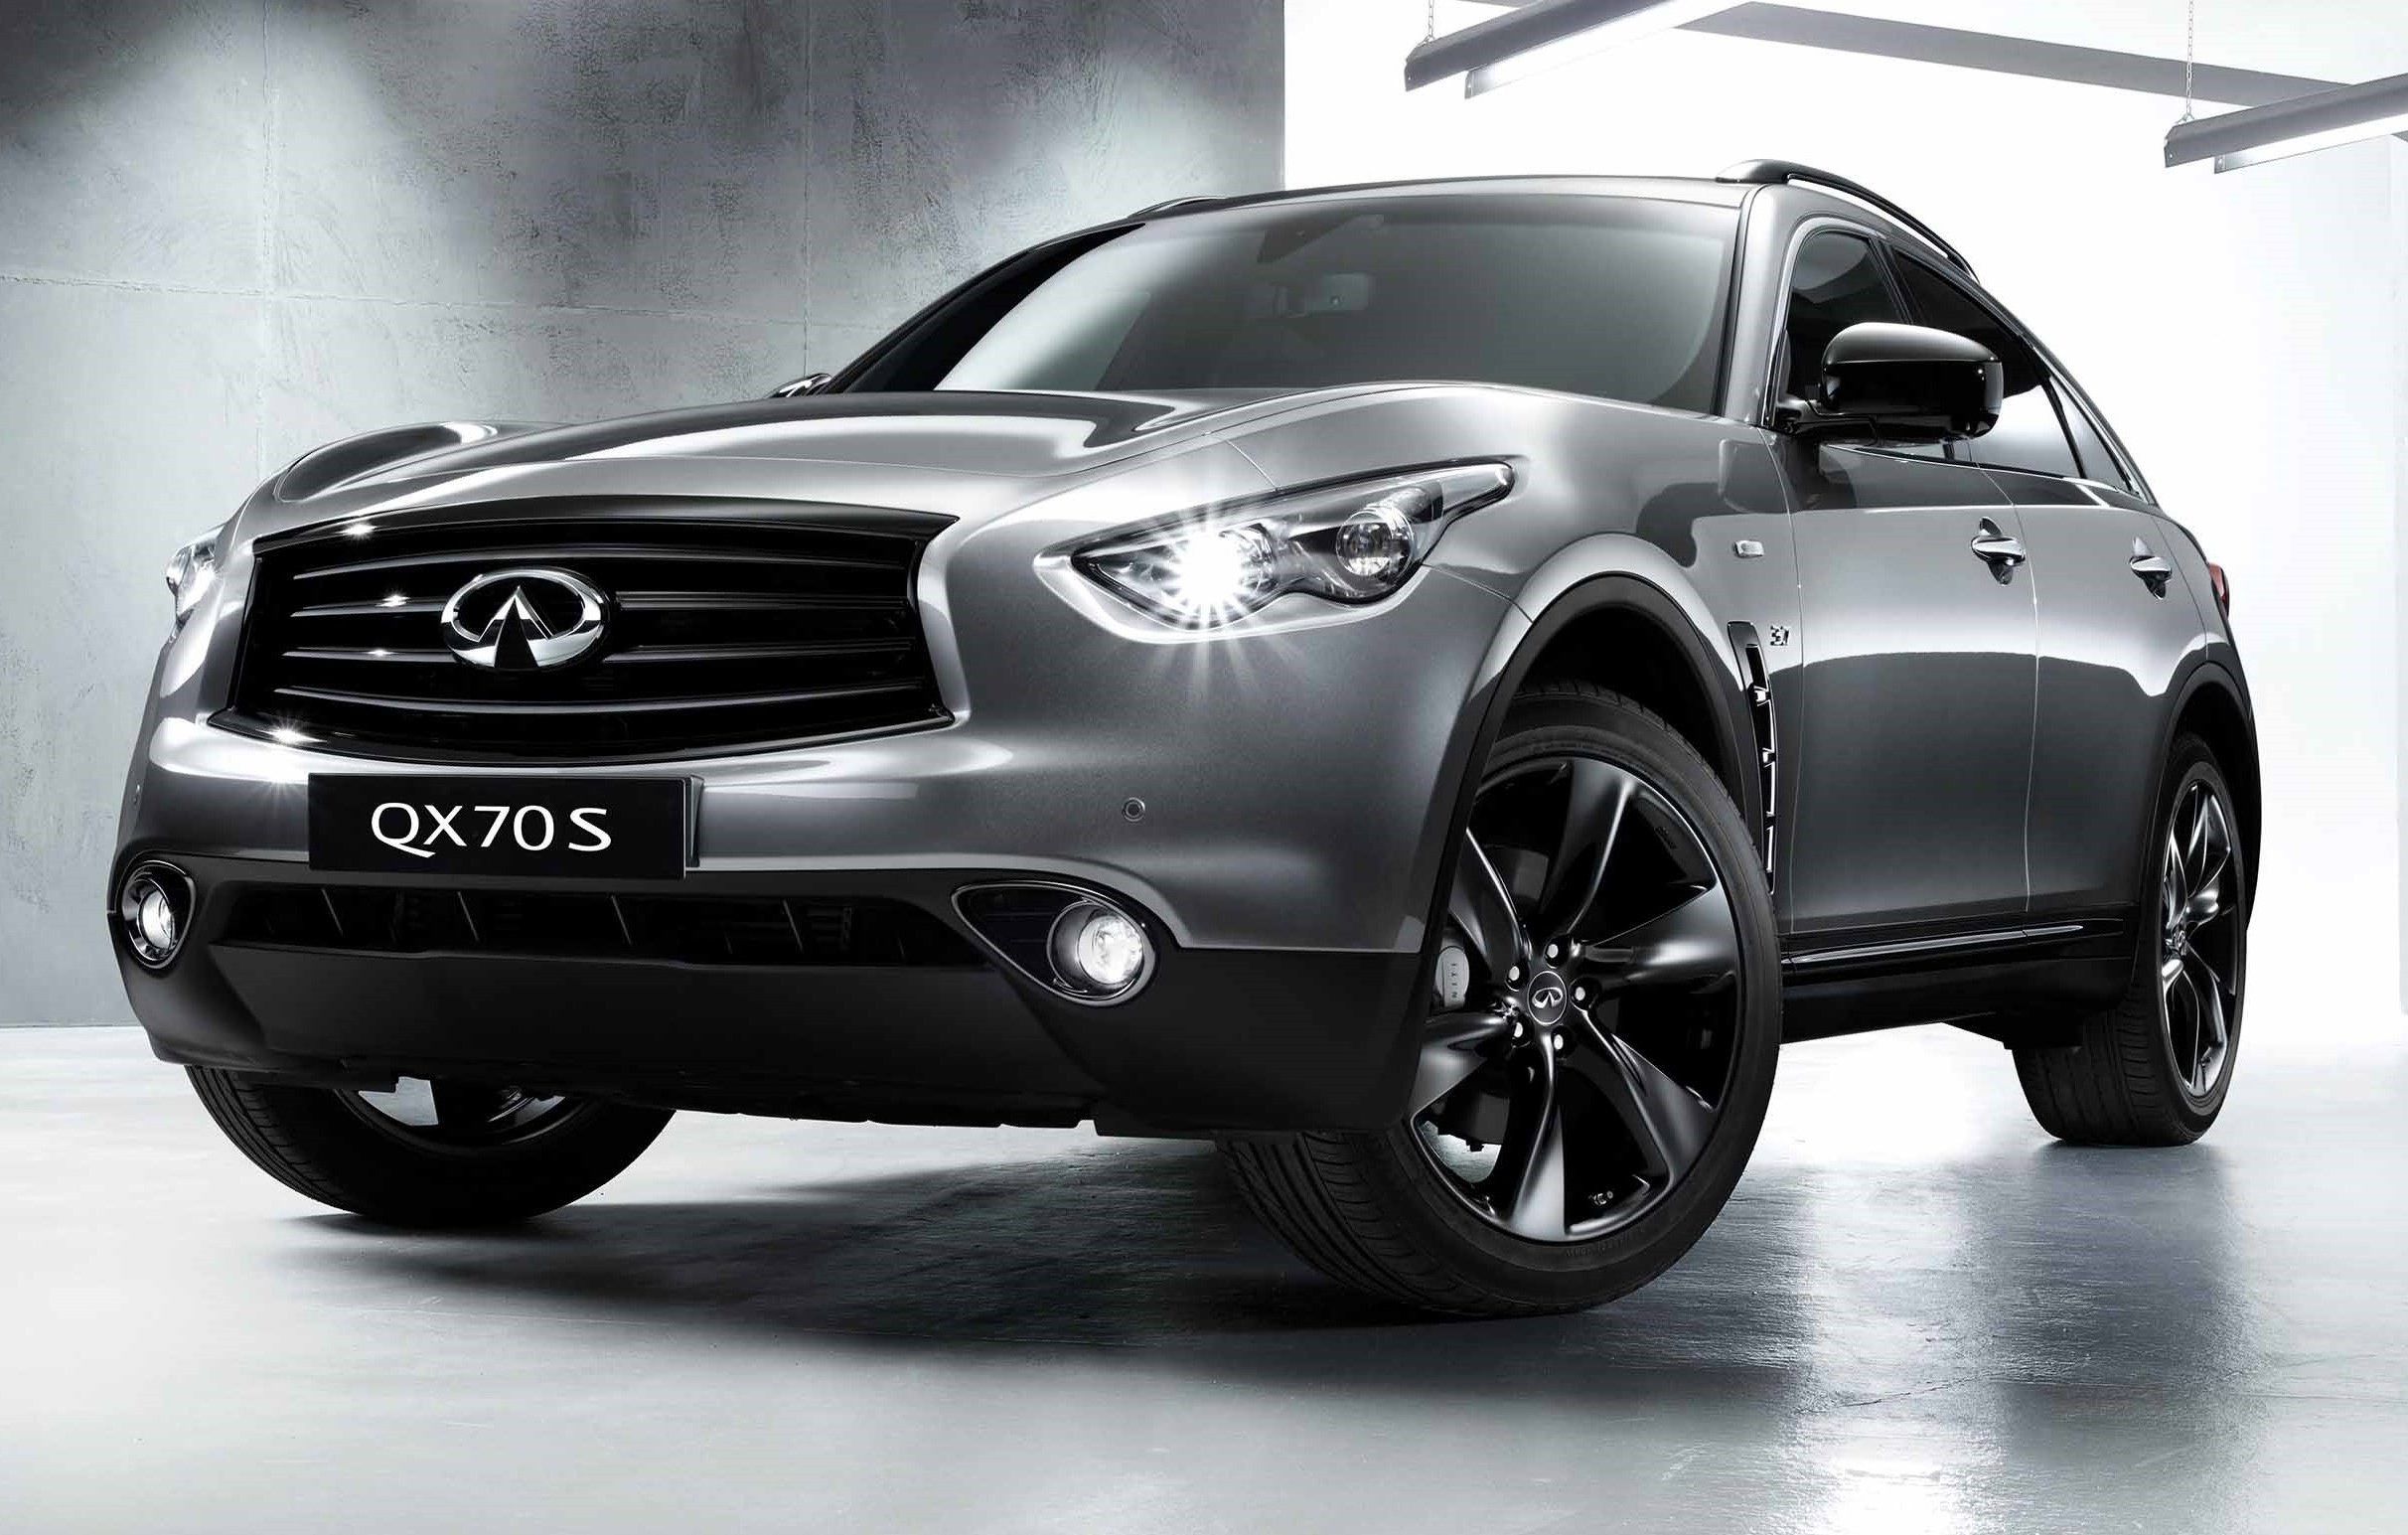 2016 infiniti qx70 s design pricing and specifications. Black Bedroom Furniture Sets. Home Design Ideas